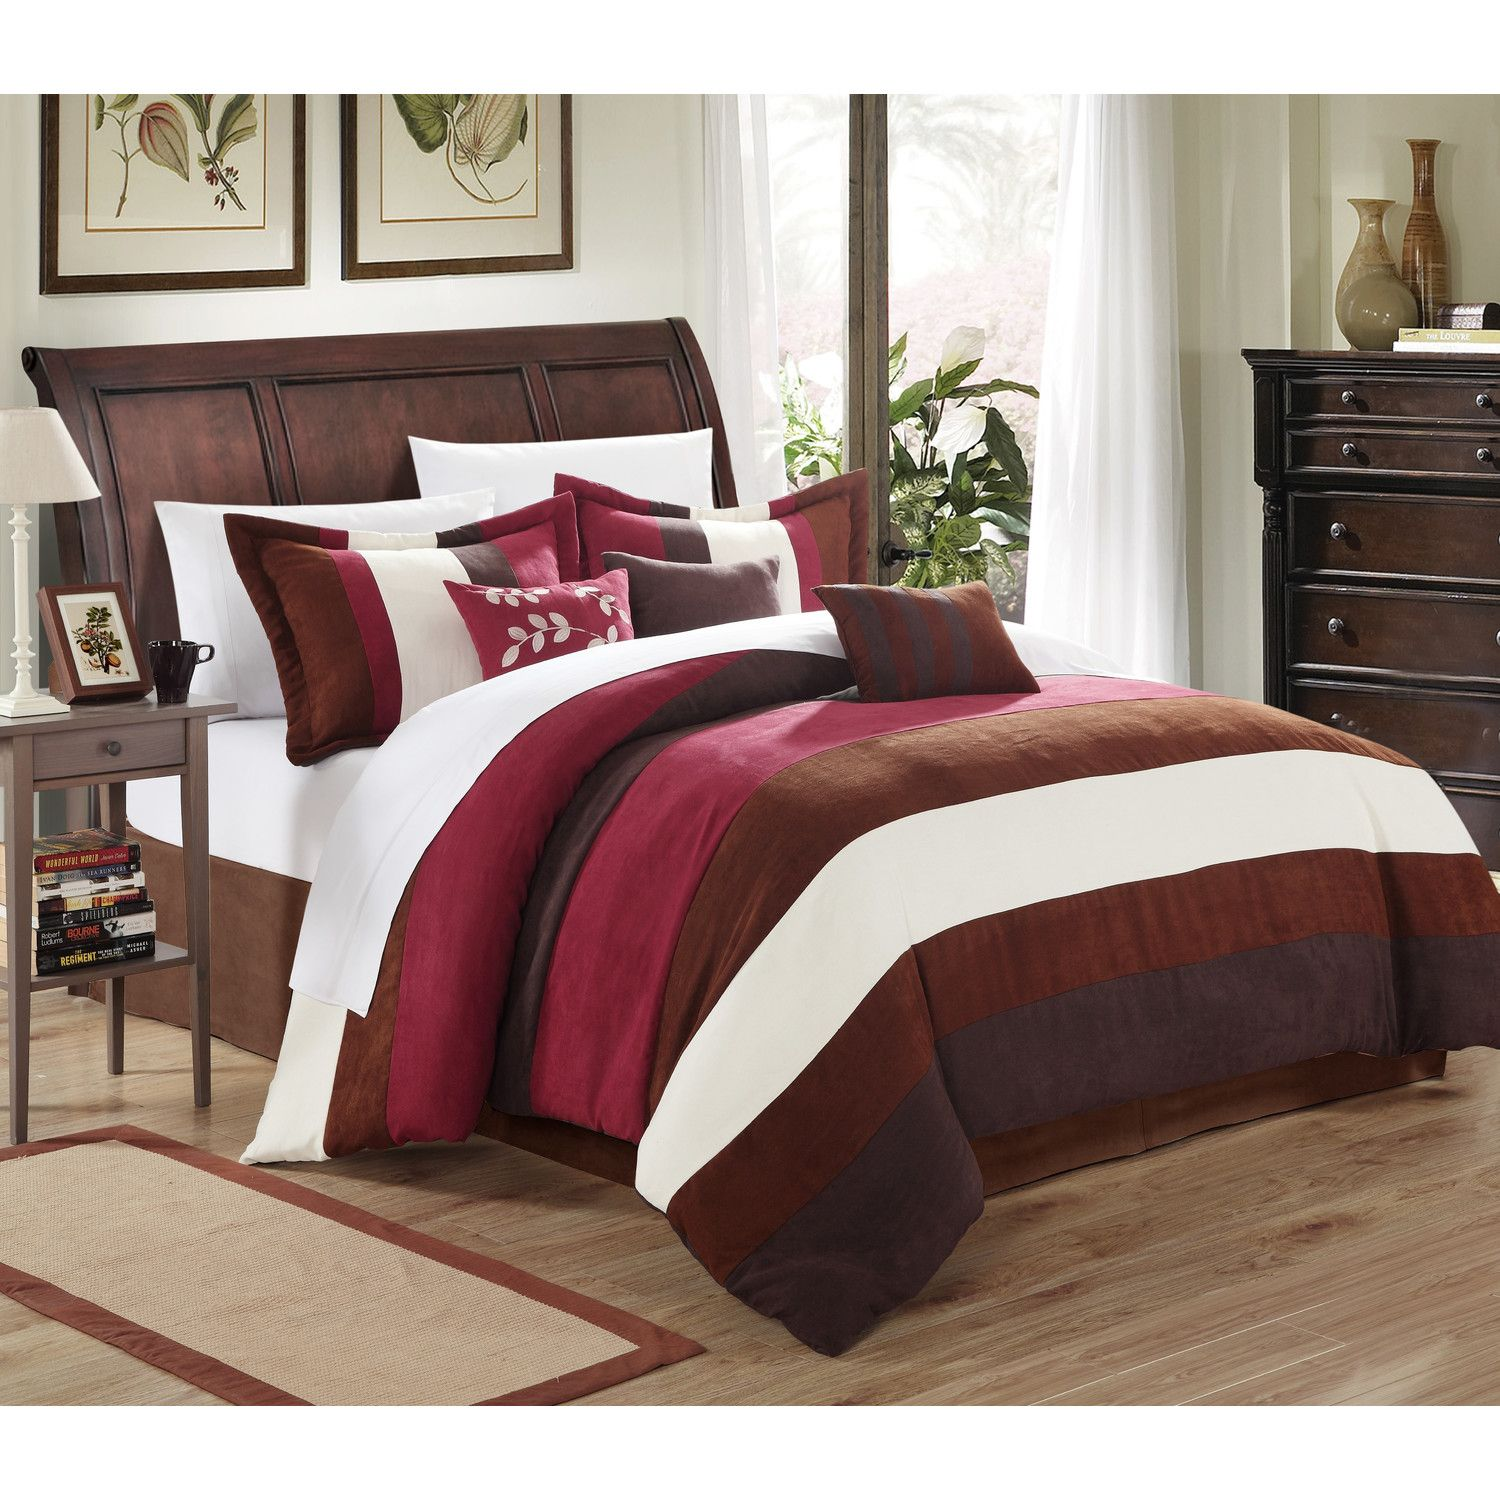 Superior Chic Home Cathy 7 Piece Comforter Set U0026 Reviews | Wayfair